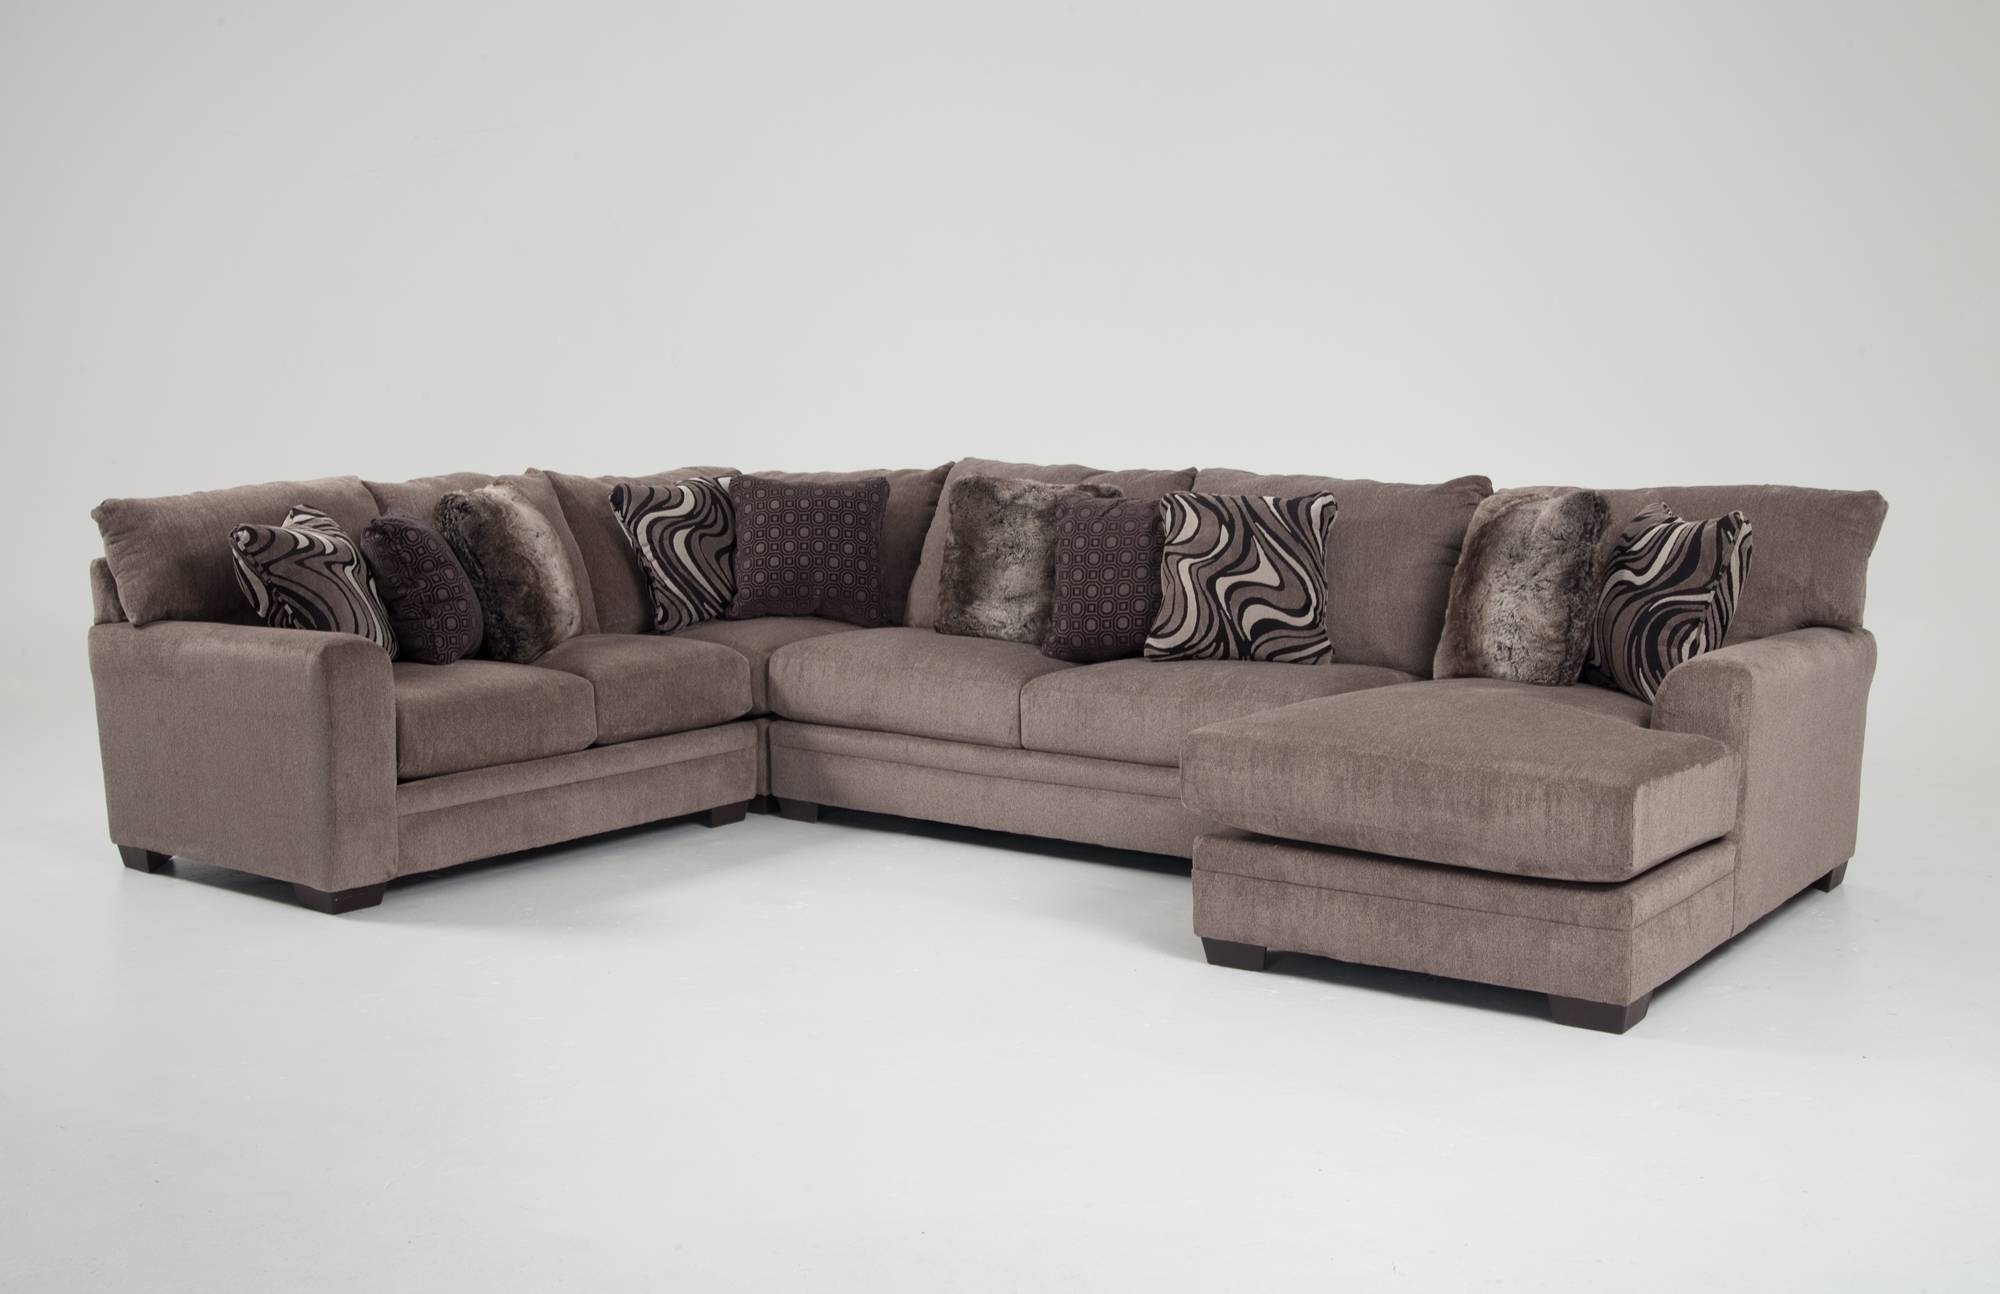 Best And Newest Sectional Sofas Under 700 Regarding Home Designs : Bobs Living Room Sets Ikea Leather Couch Bobs (View 4 of 20)